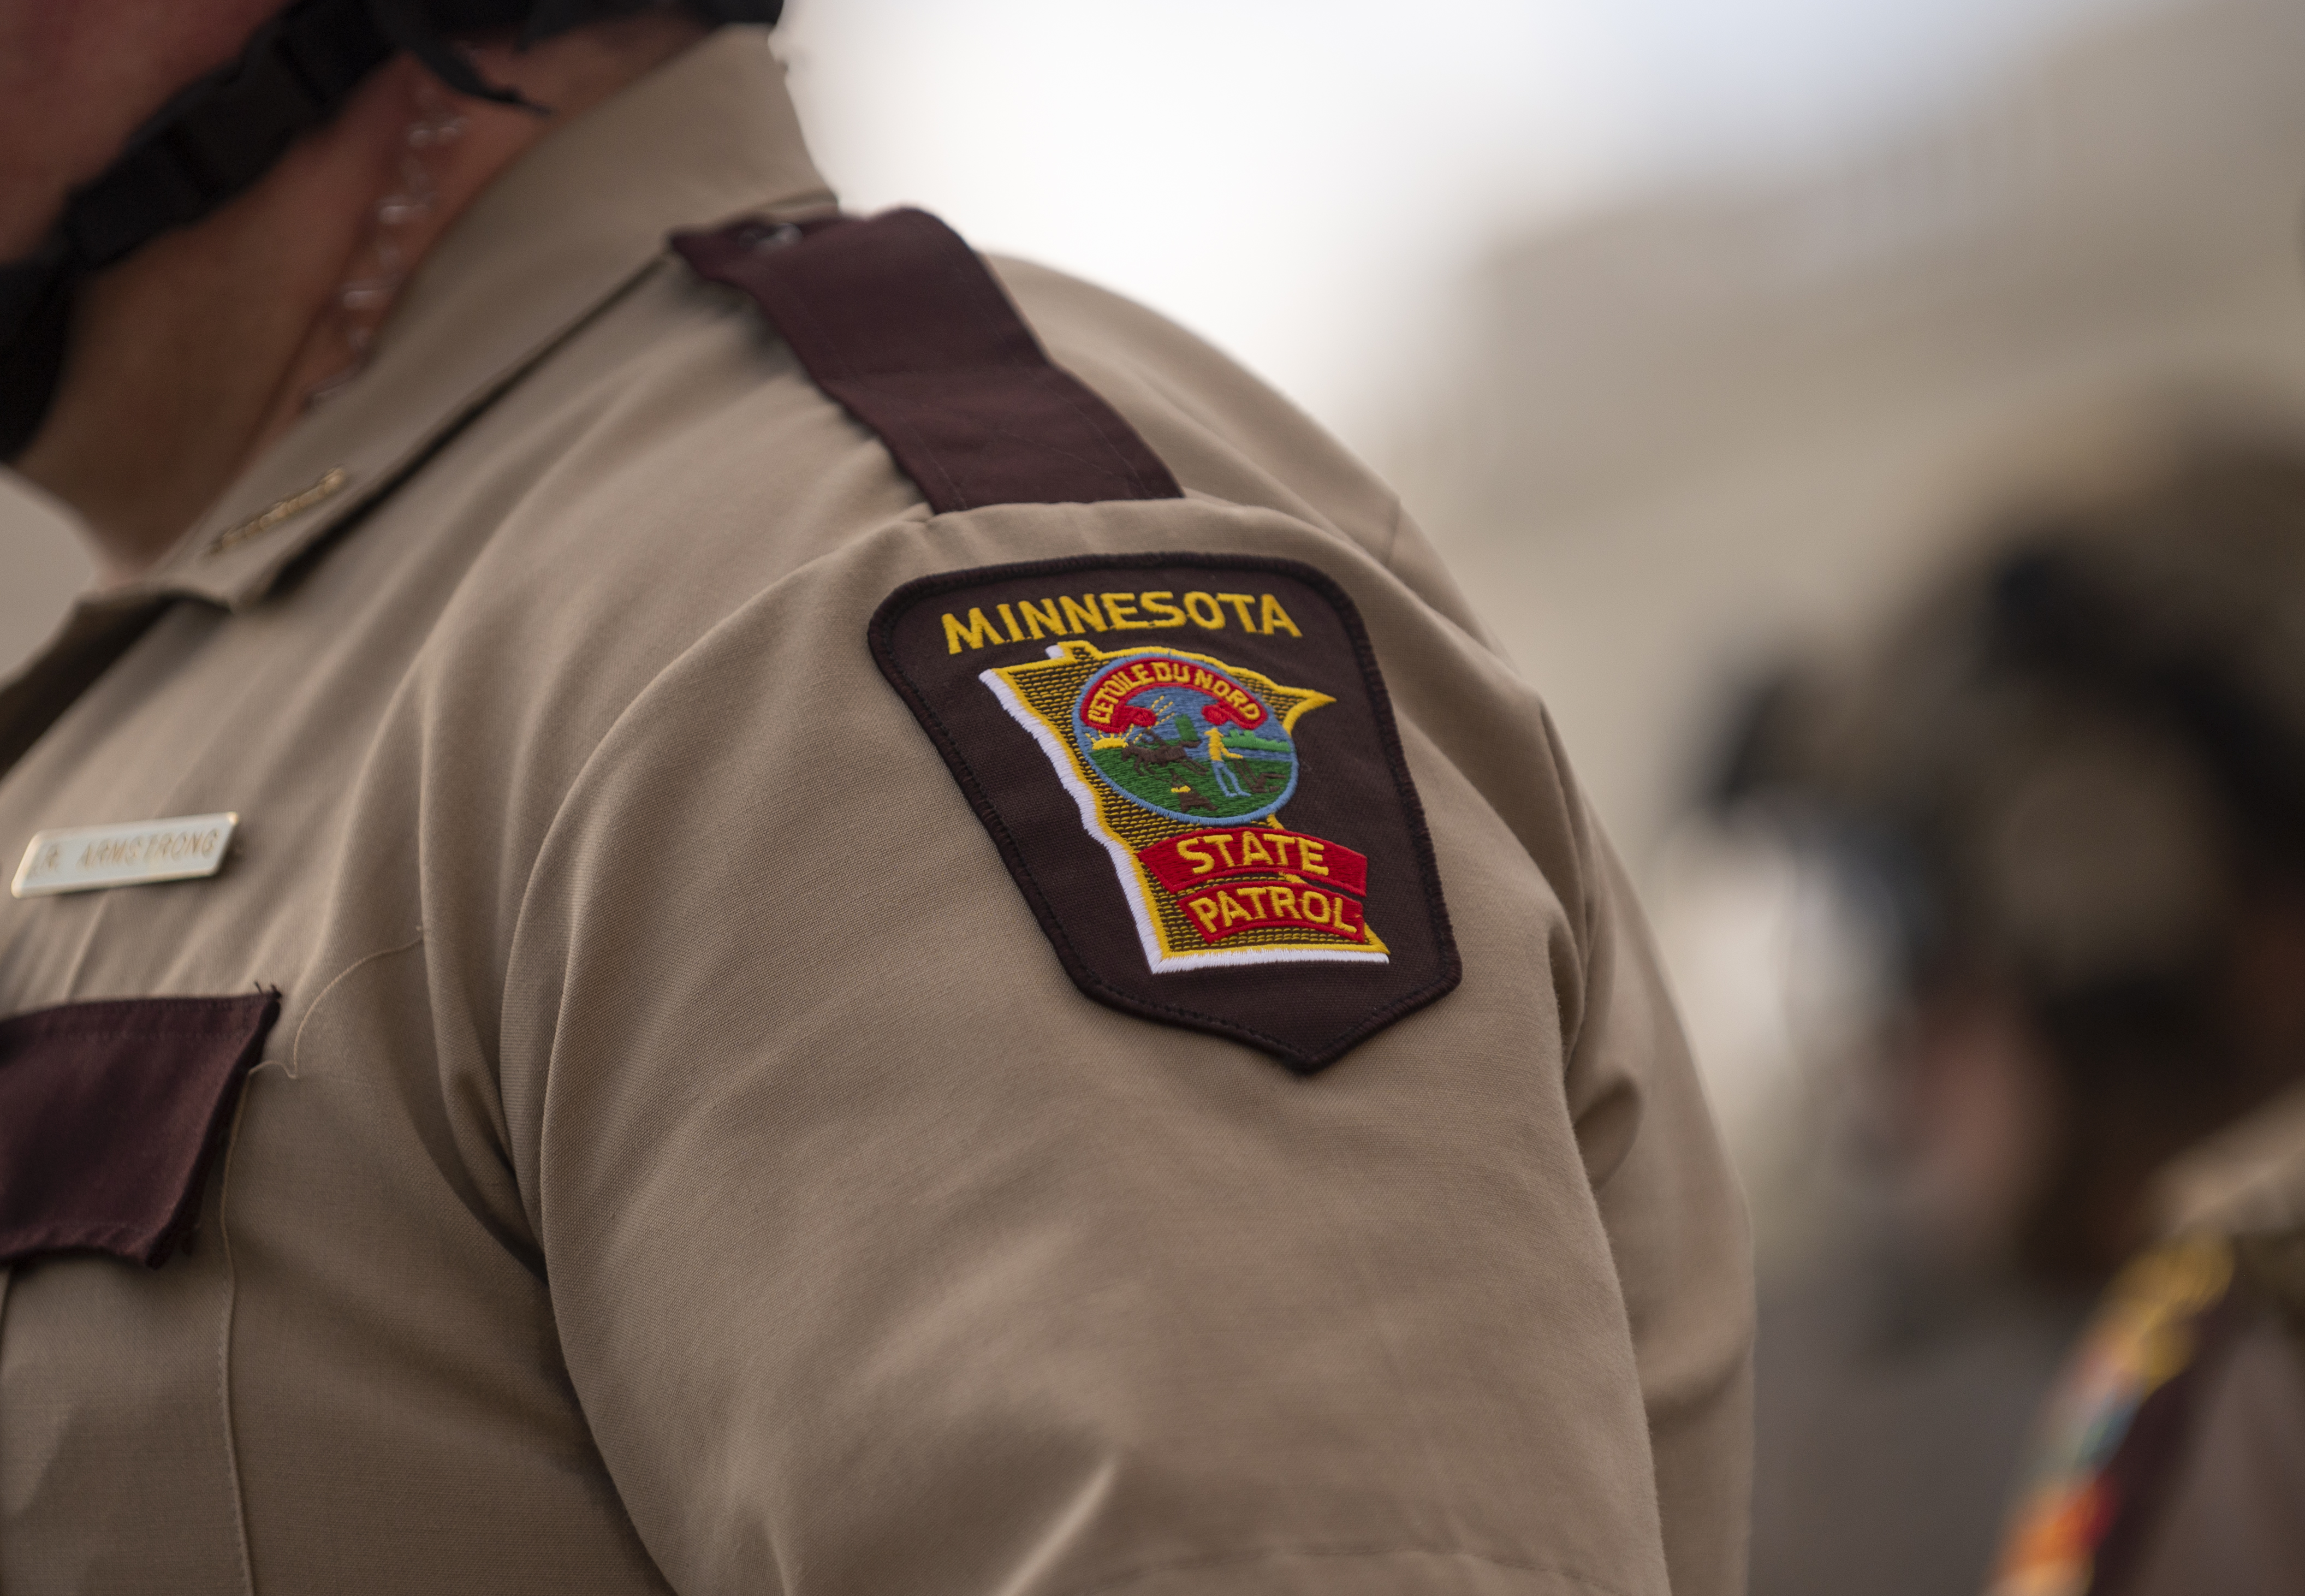 A member of the Minnesota State Patrol stands guard during a demonstration on June 10.